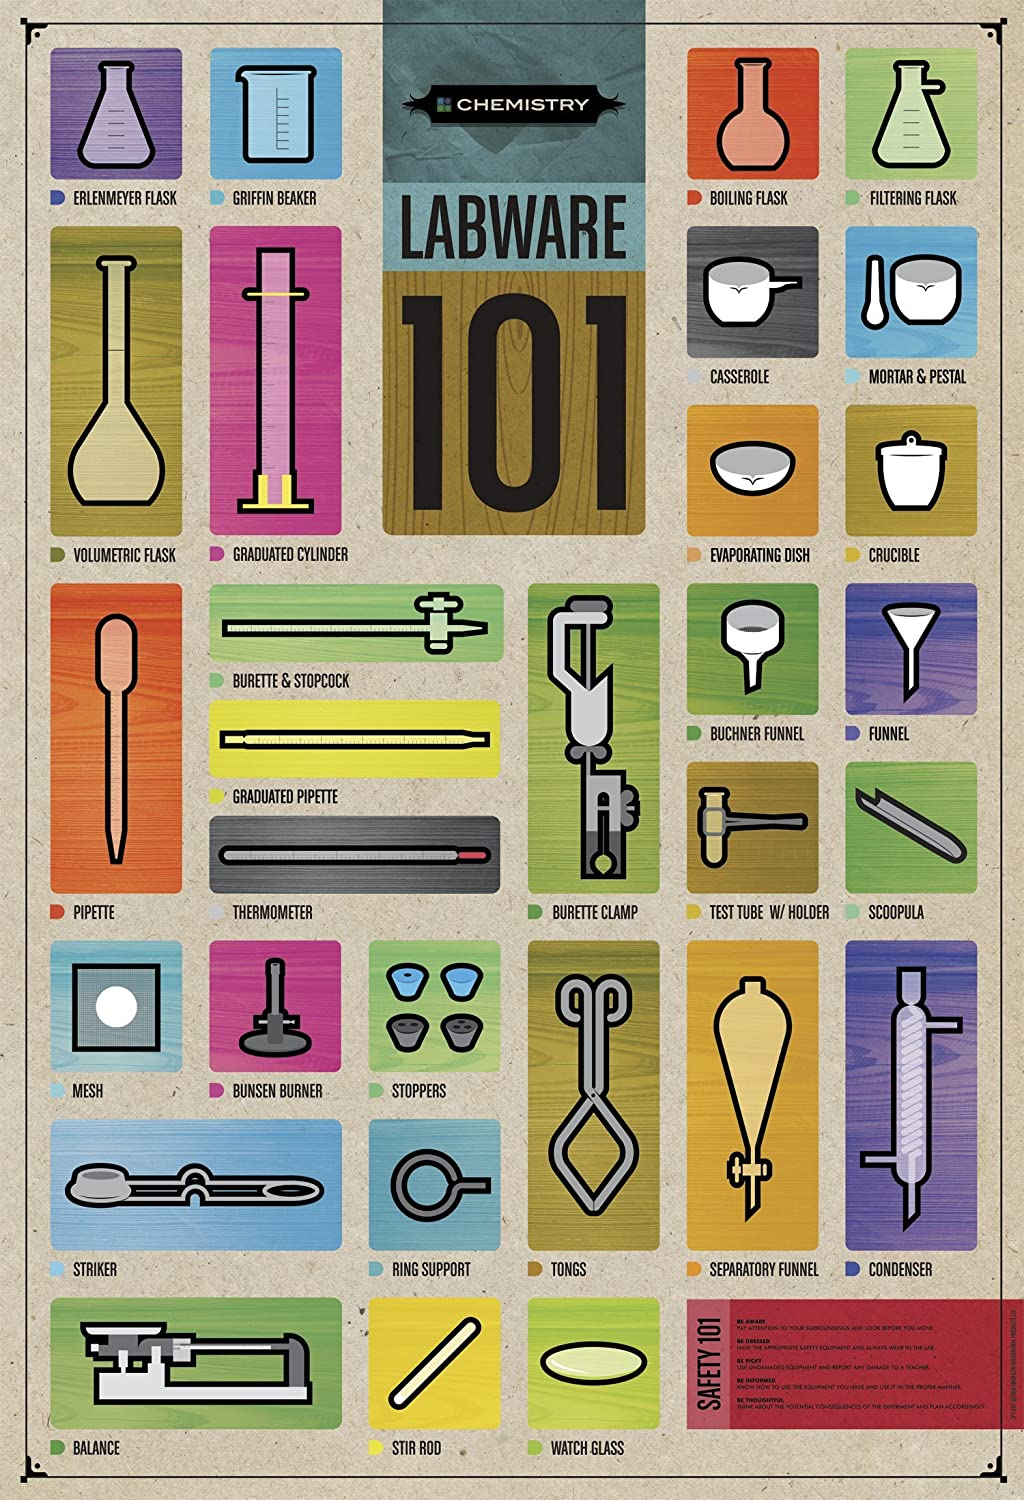 Amazon.com: American Educational Labware 101 Poster: Industrial ...